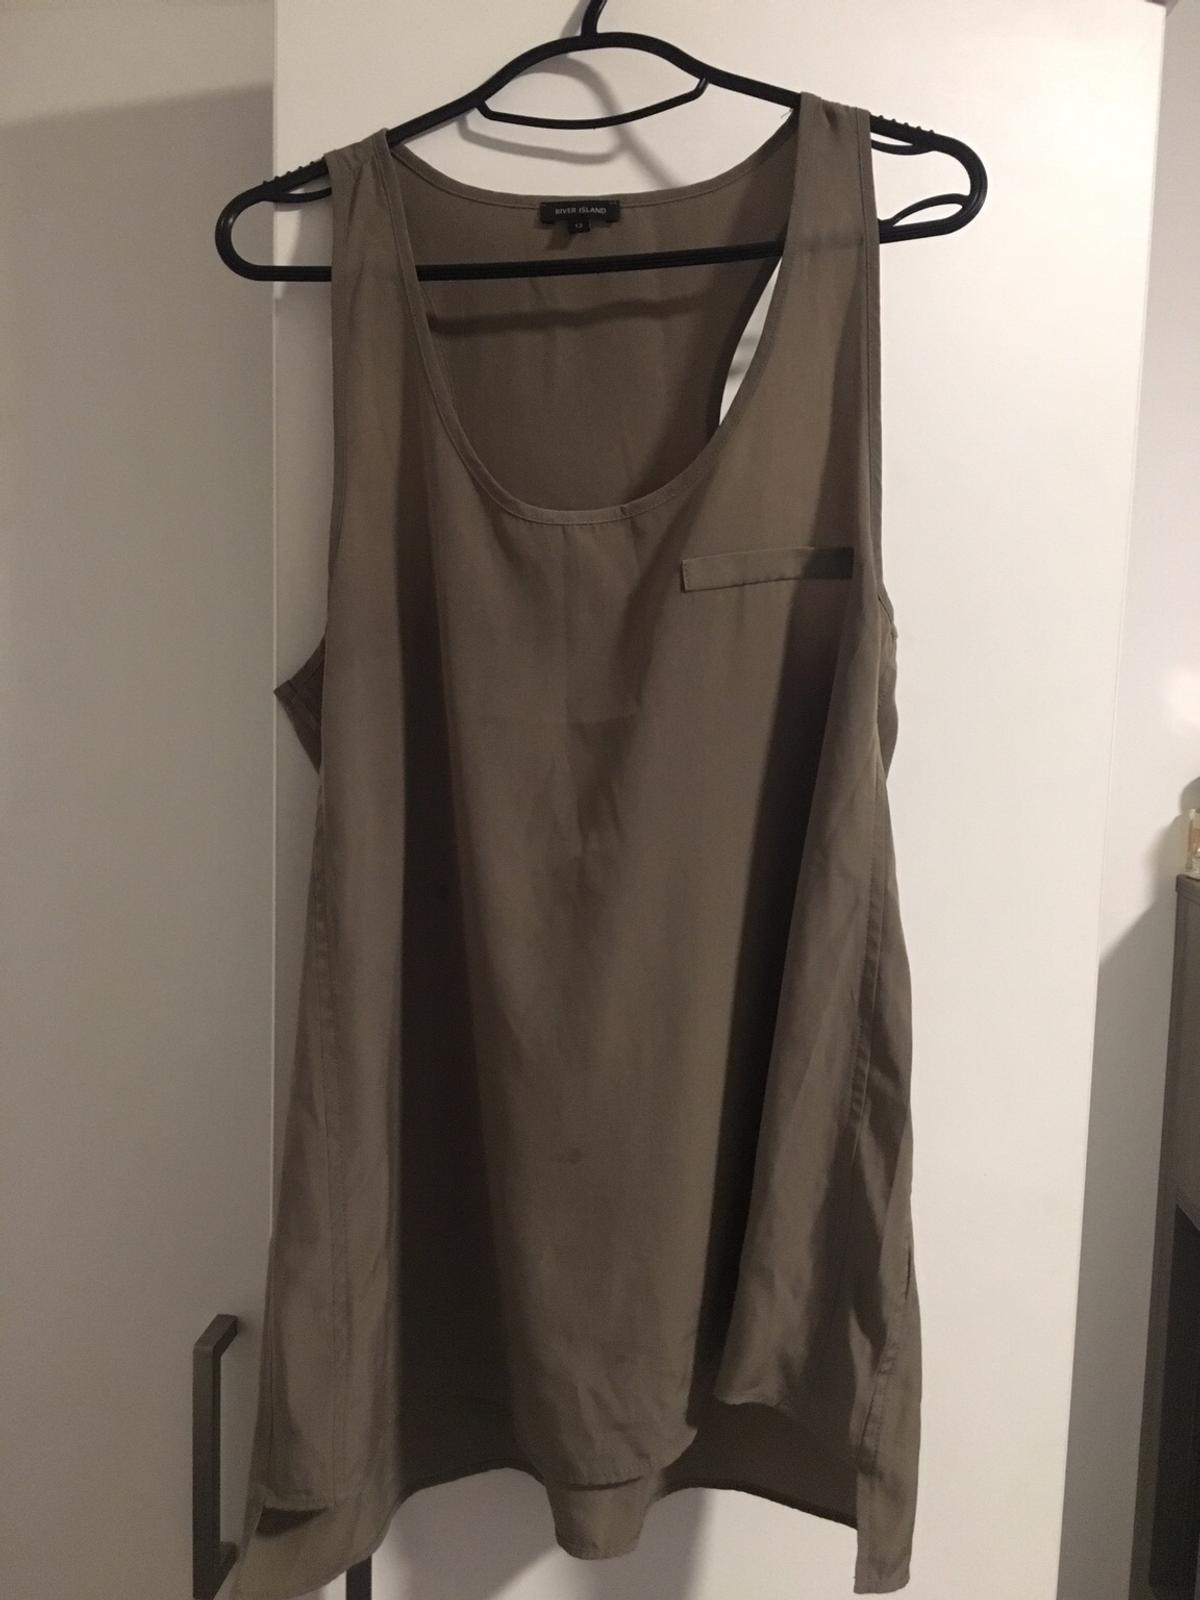 Khaki Size 8-12 Oversized River island Originally bought for £26 Worn twice. Great condition